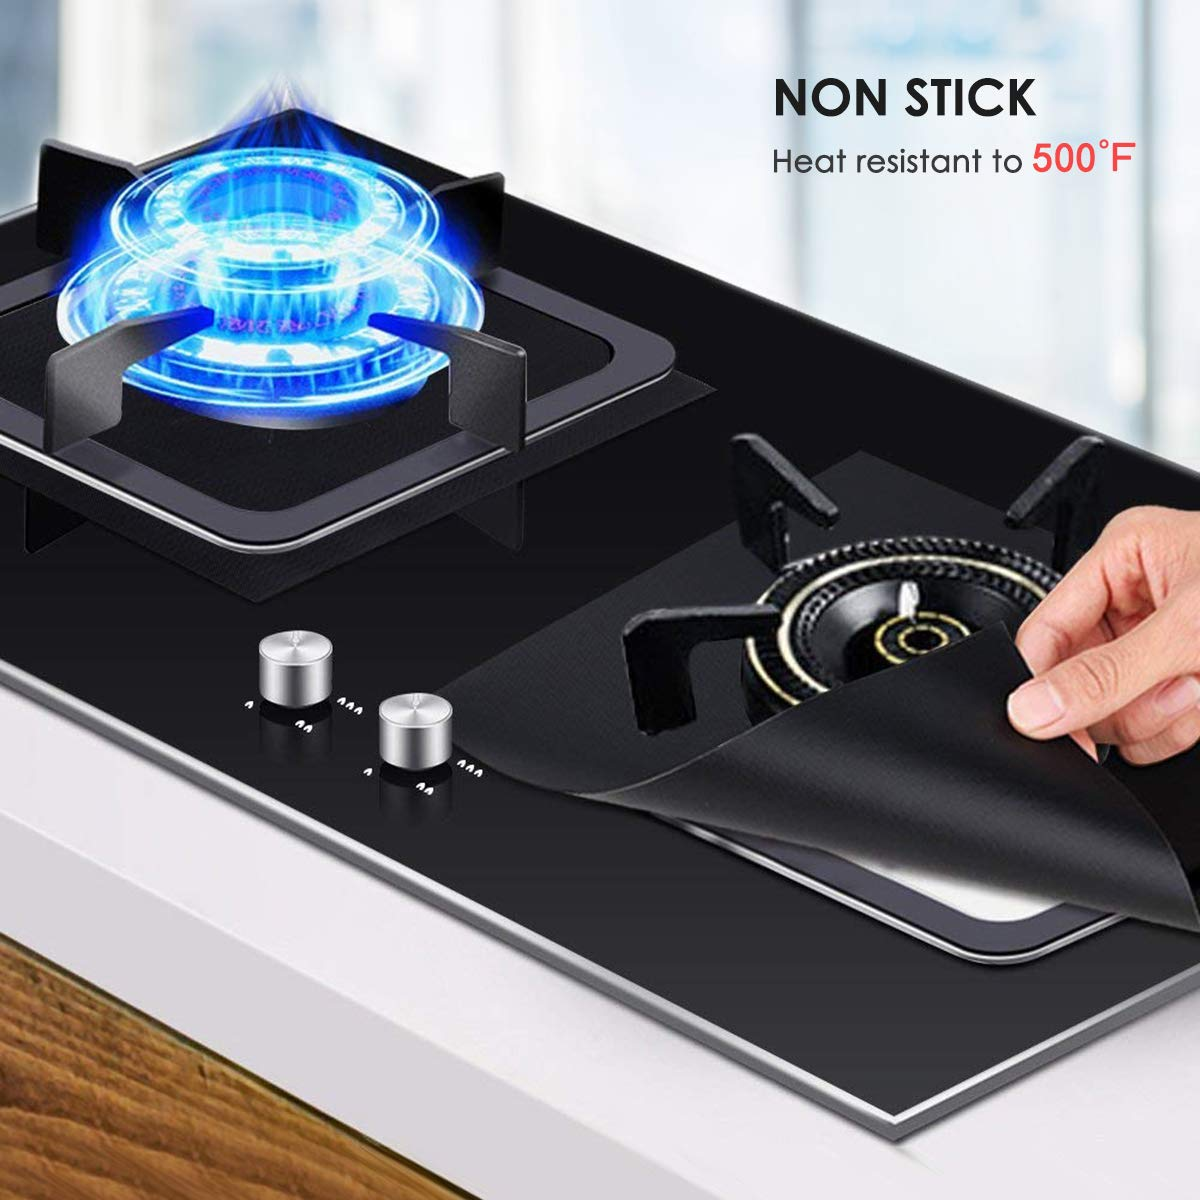 """Size 10.6/"""" x 10.6/"""" Cuttable Easy to Clean Non- Stick 10-Pack Gas Stove Burner Covers Wallfire Stove Burner Covers Black Square 0.2mm Double Thickness Protectors for Kitchen Dishwasher Safe"""